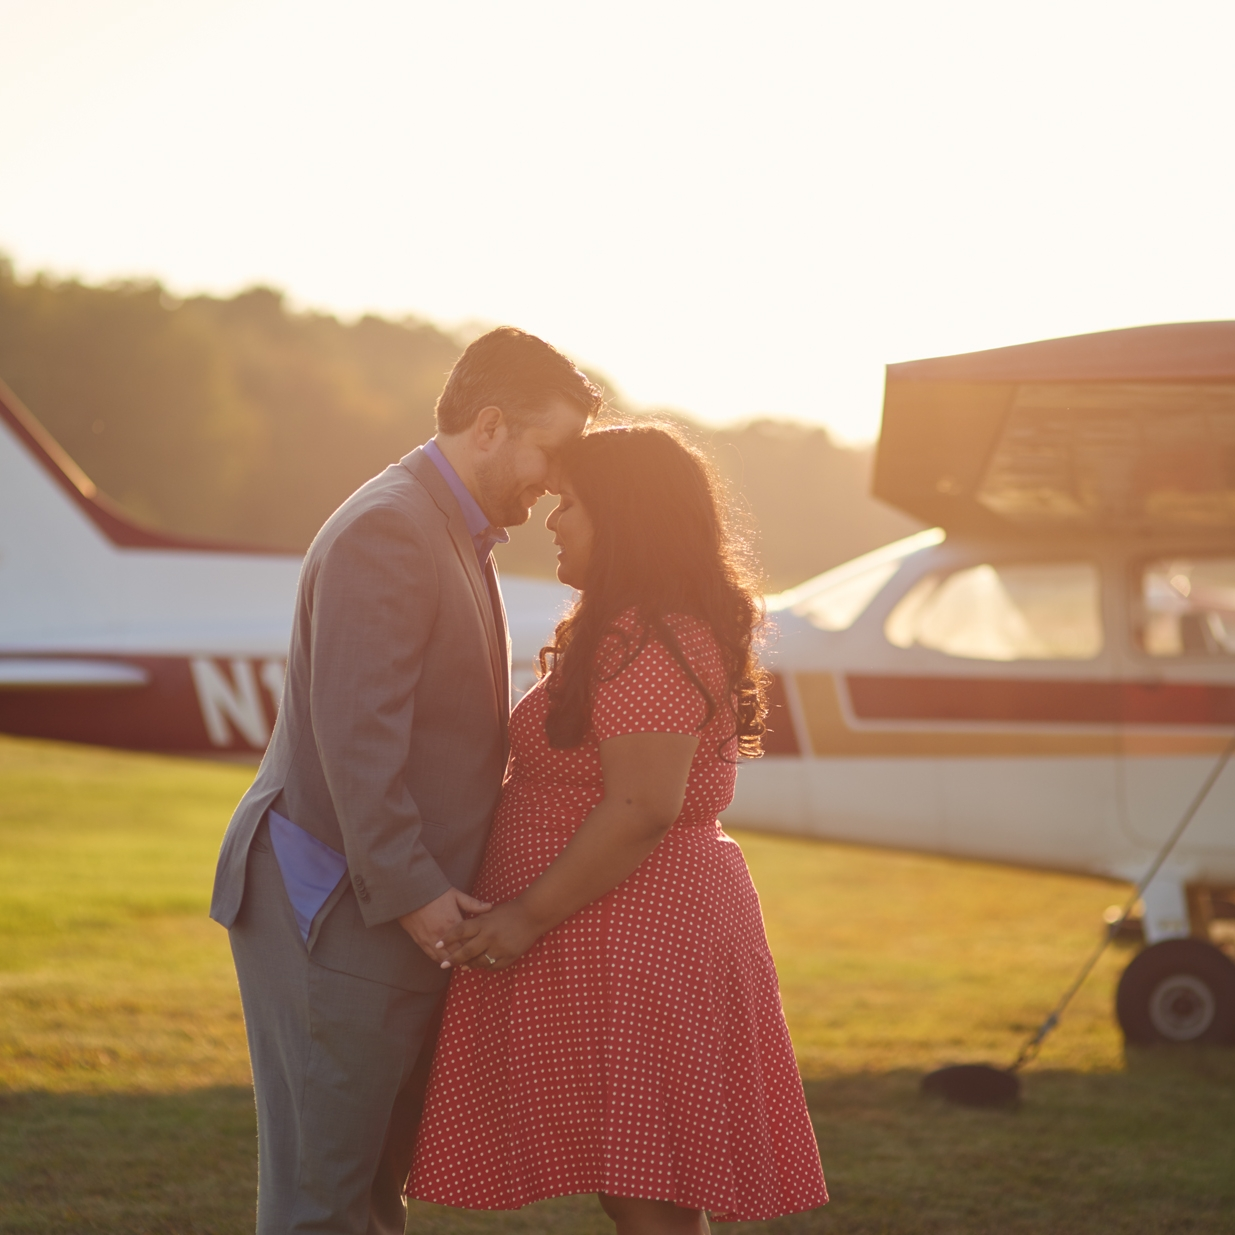 Julia and Russell's Fall engagement session on Plum Island, Plum Island Airport and the beach in Newburyport, MA